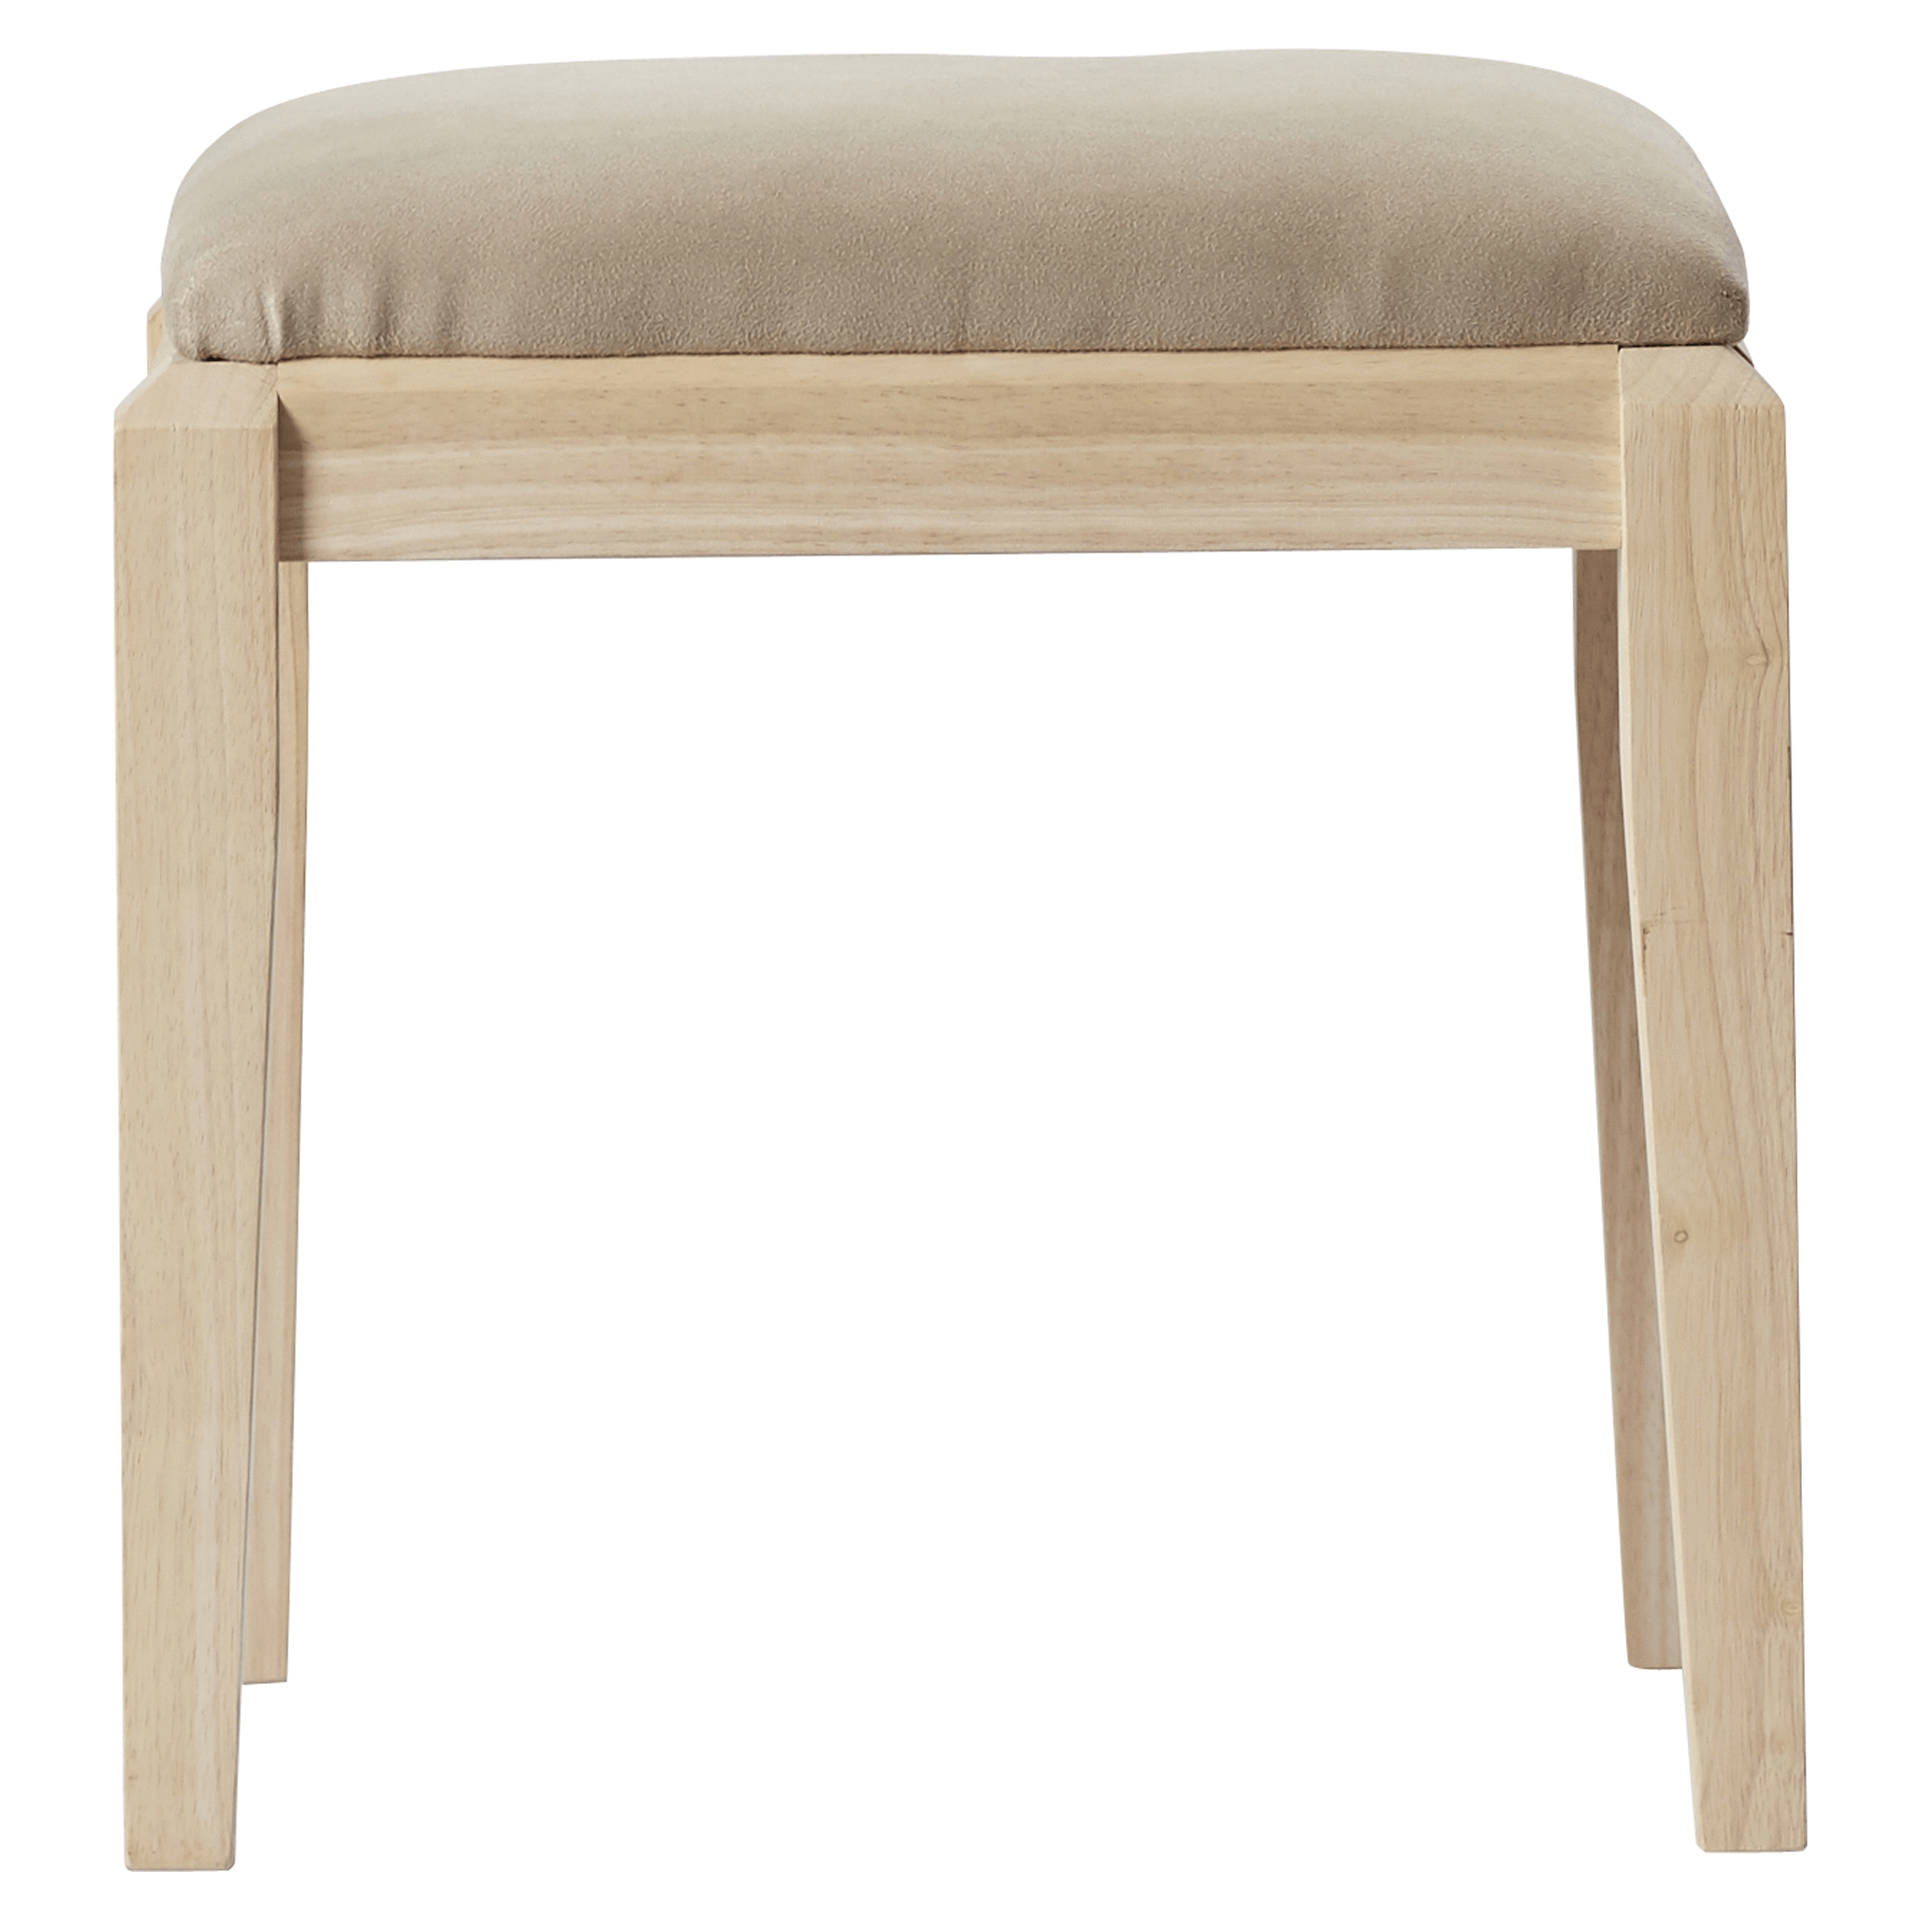 Upholstery for Unfinished Vanity Stool Ideas